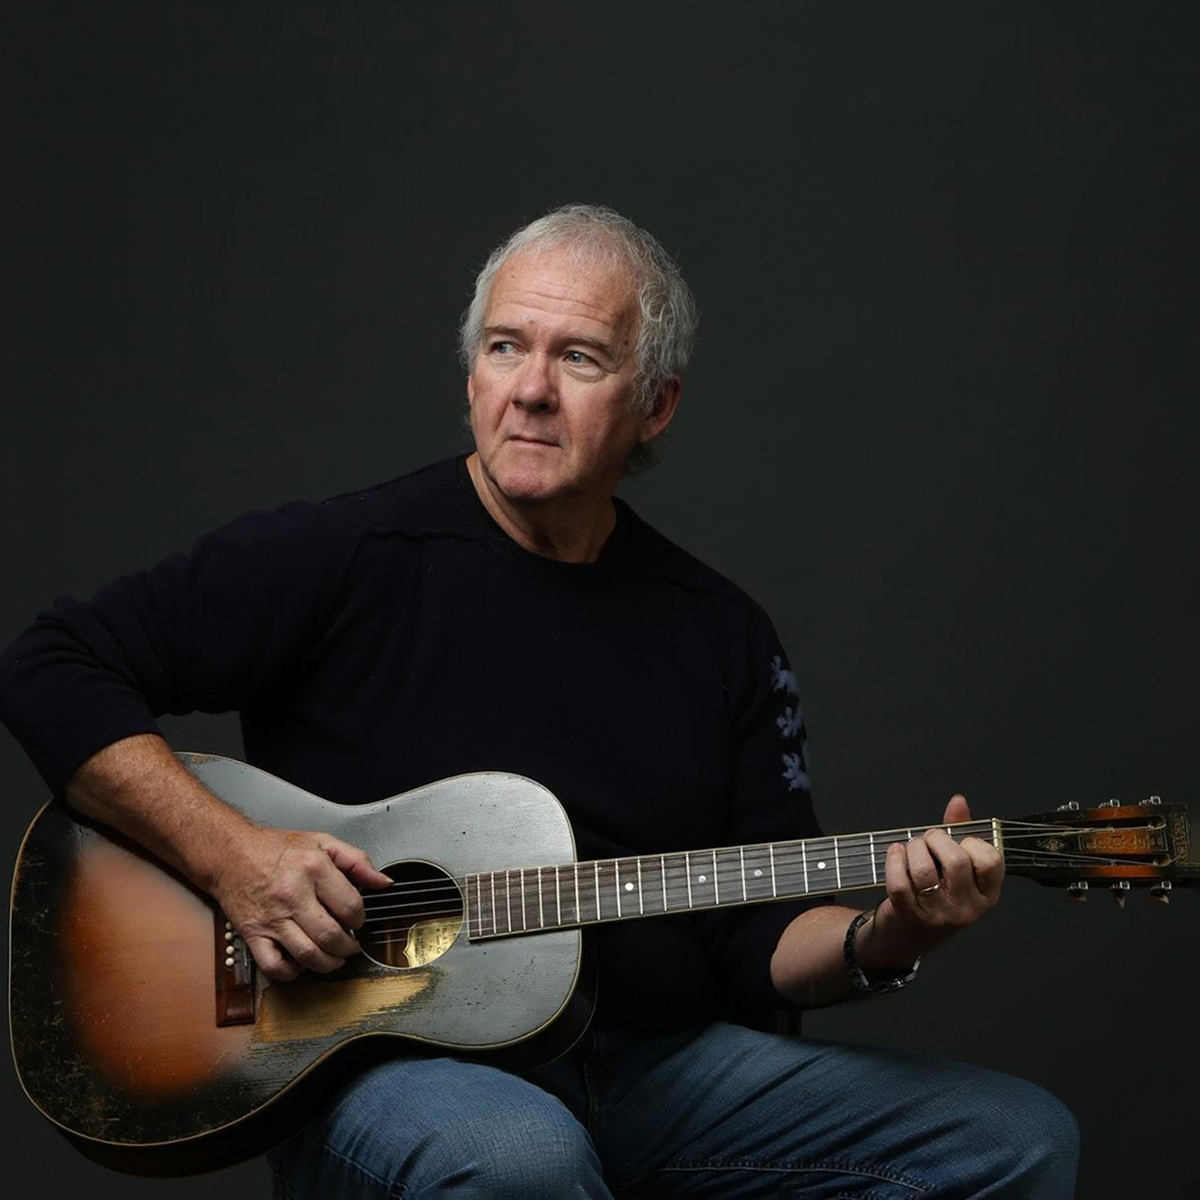 """Murray McLauchlan Speaks to Racism and Privilege on New Album """"Hourglass"""" out July 9"""